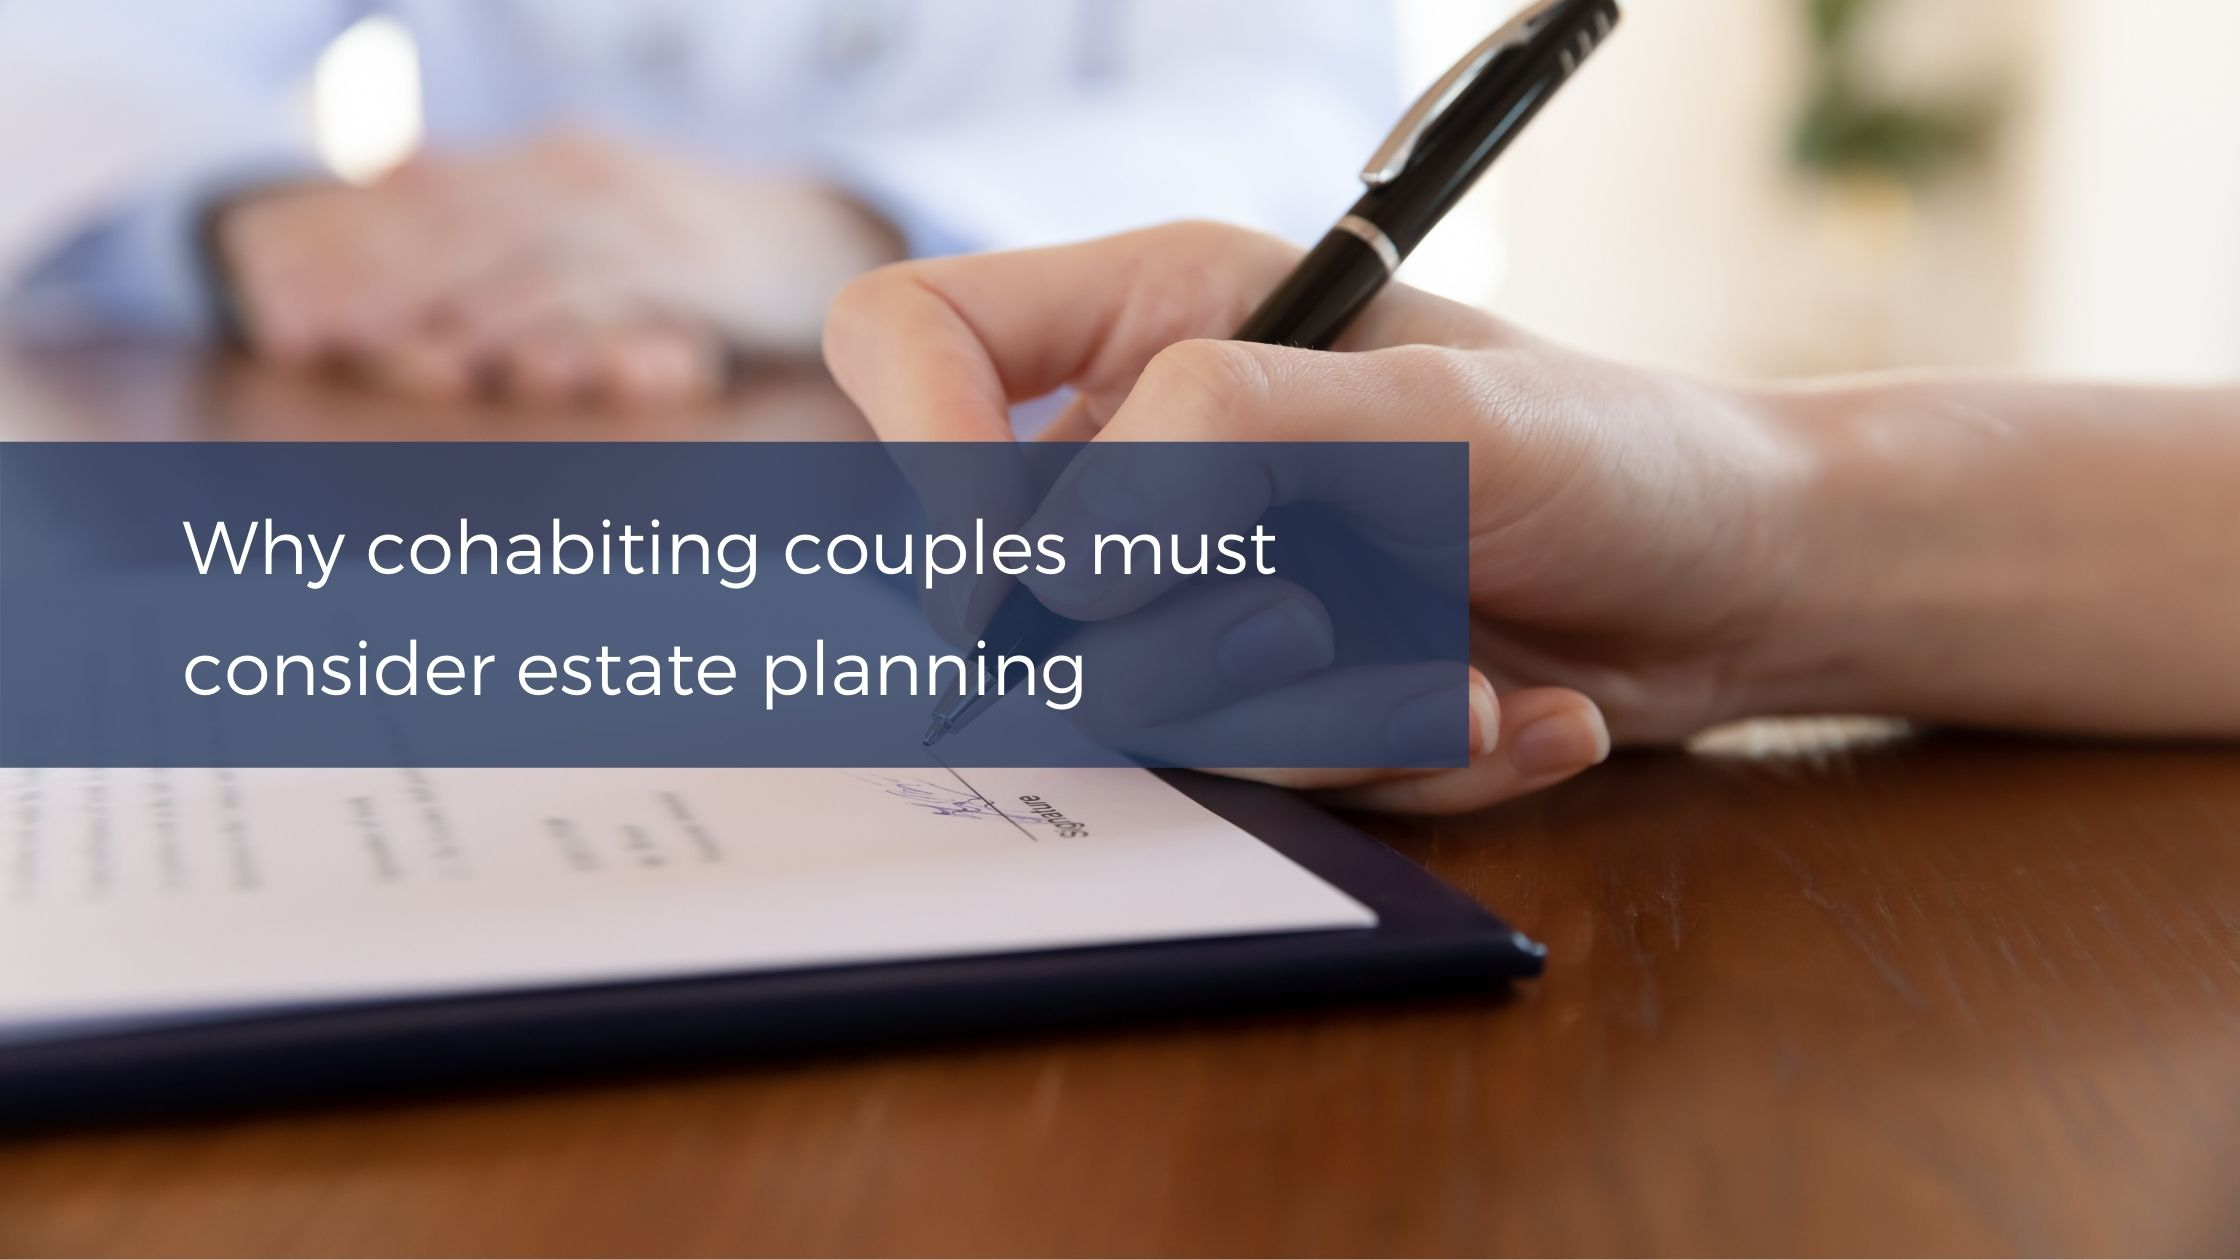 Why cohabiting couples must consider estate planning